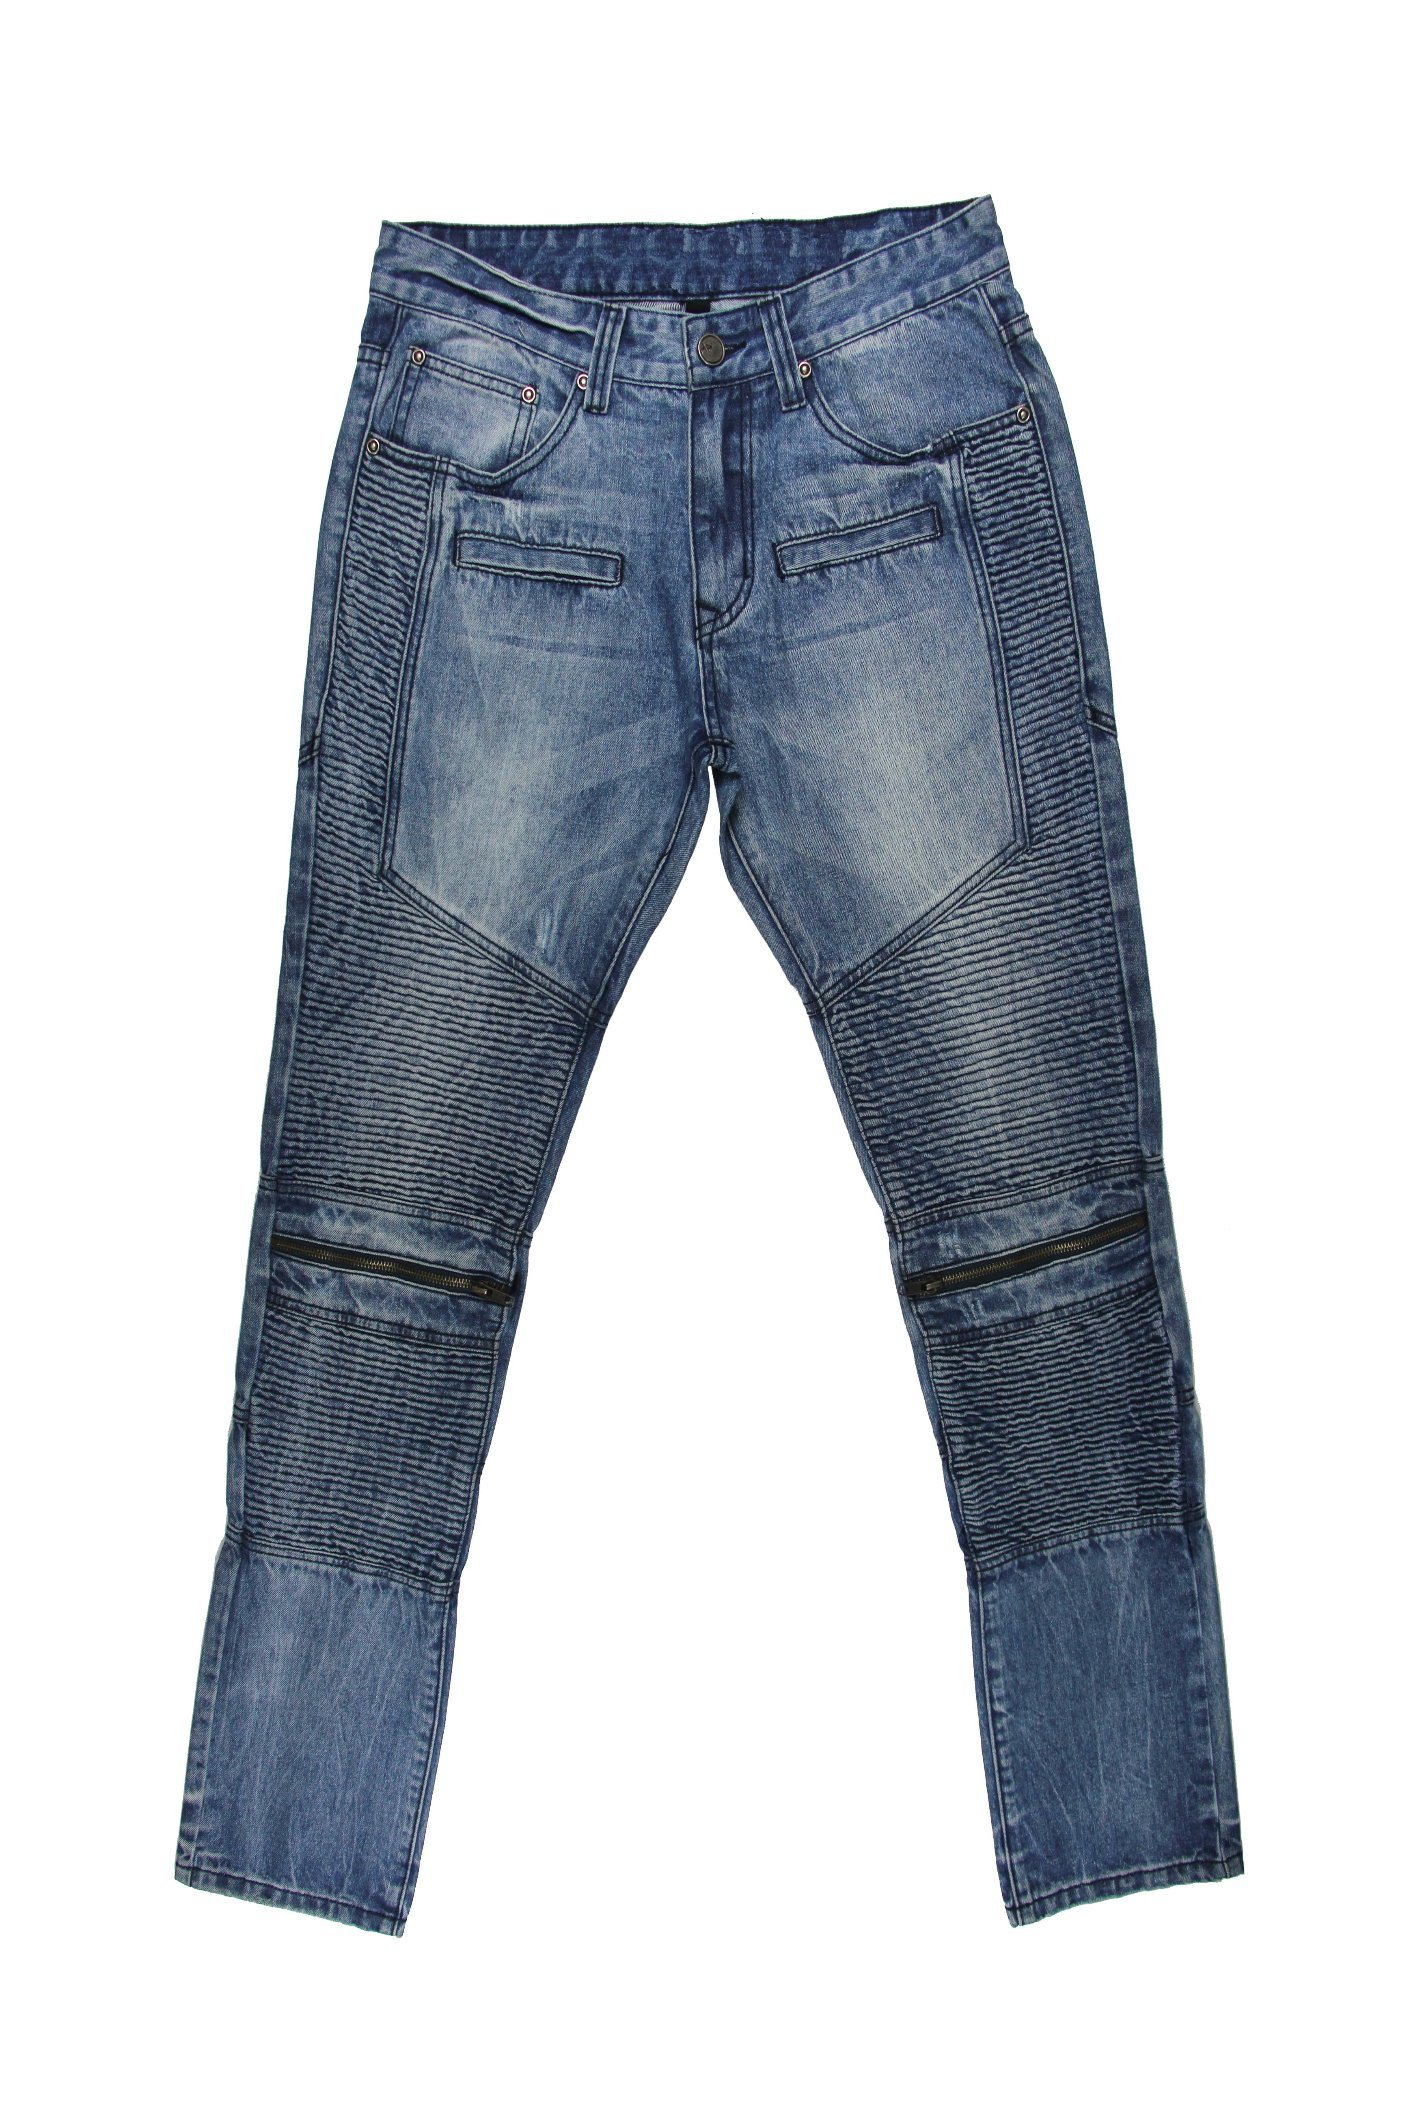 High Quality Men′s Smcok Jeans (MYX15)